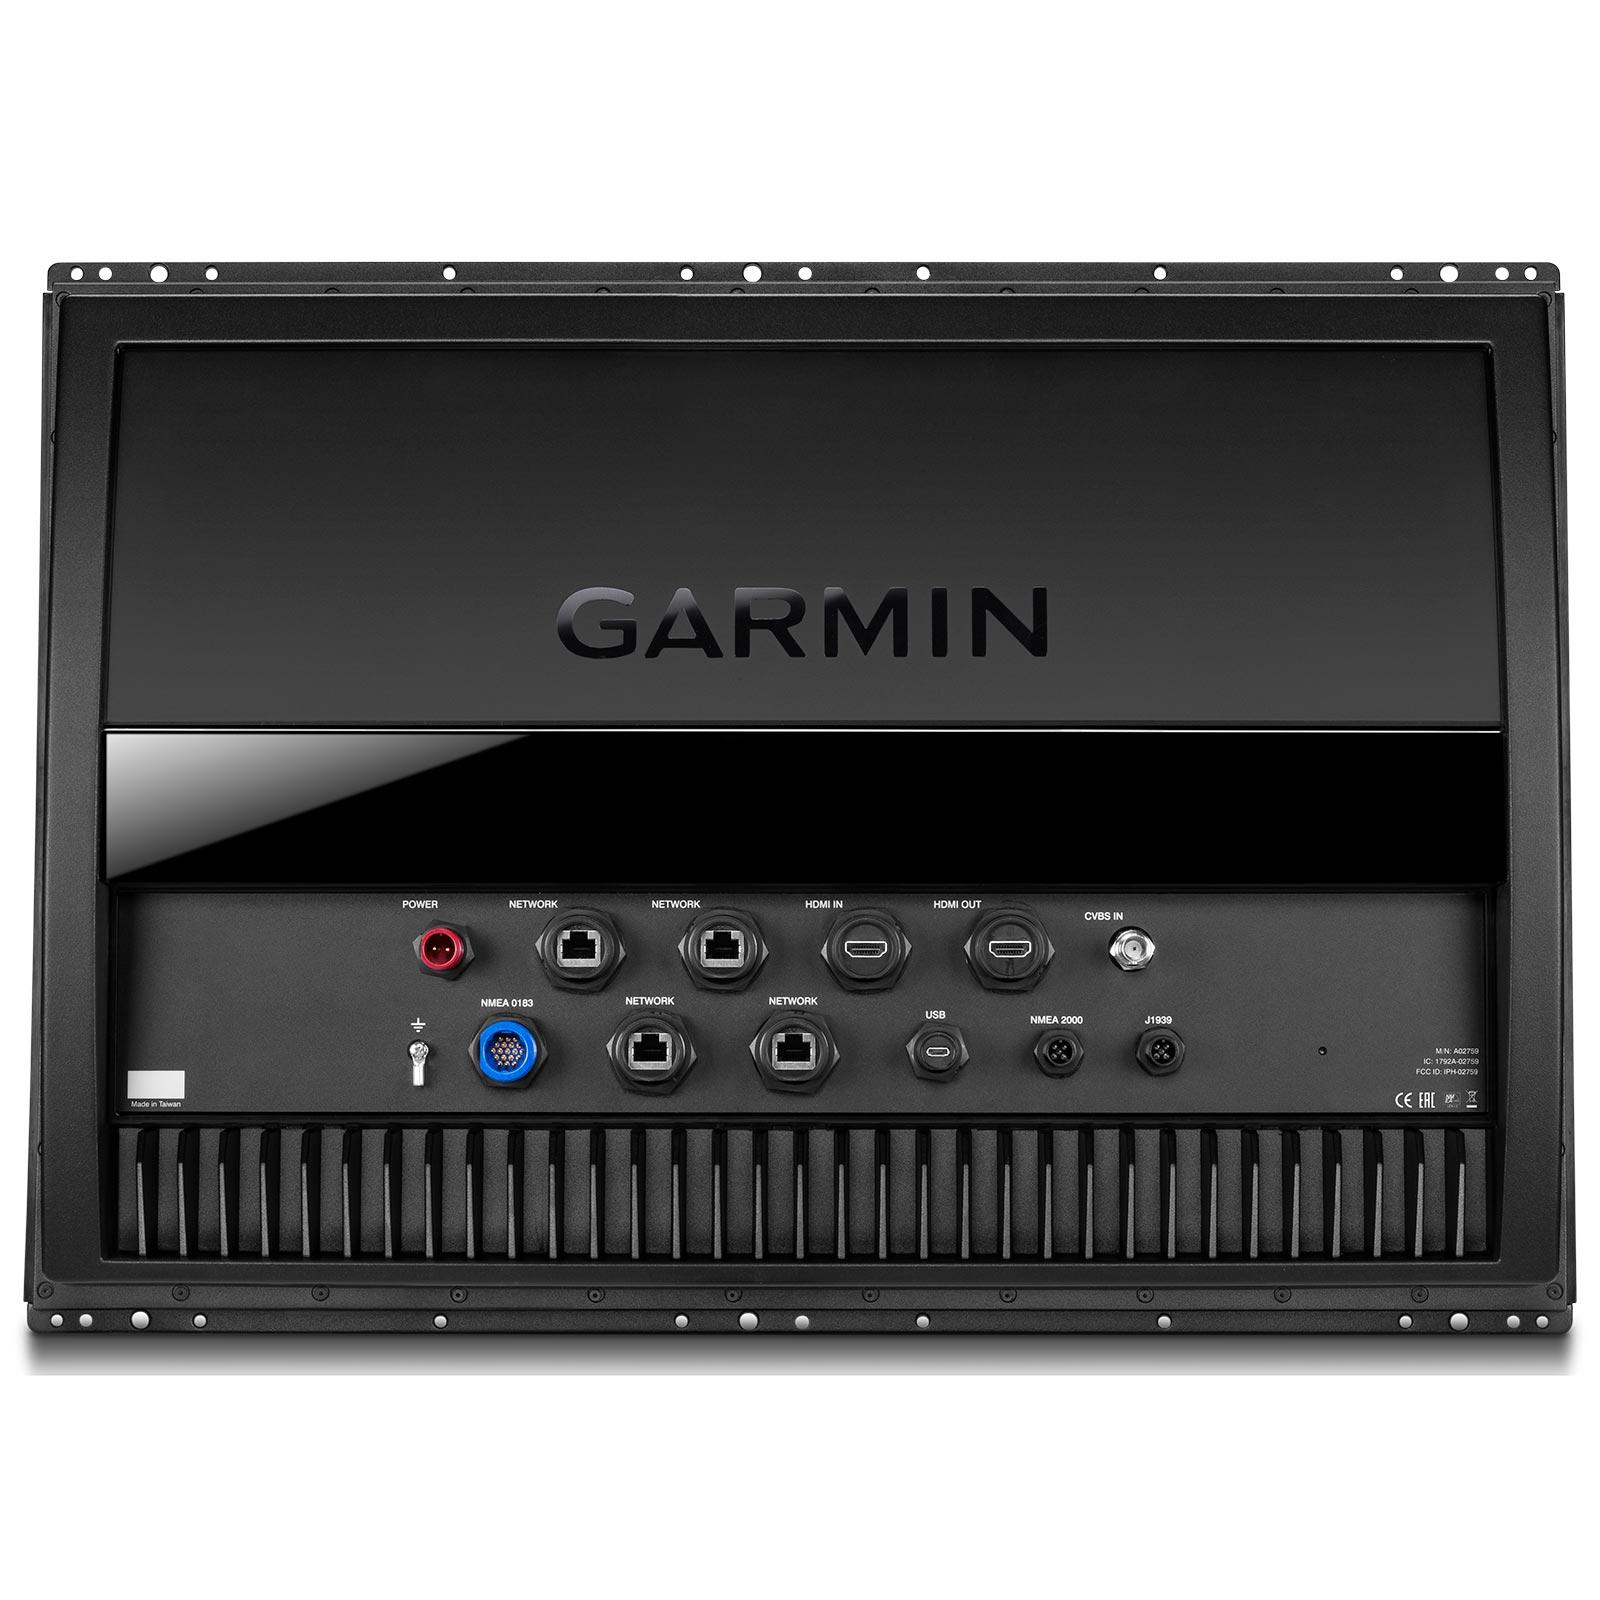 Garmin GPSMAP 8624 MFD with Mapping Back